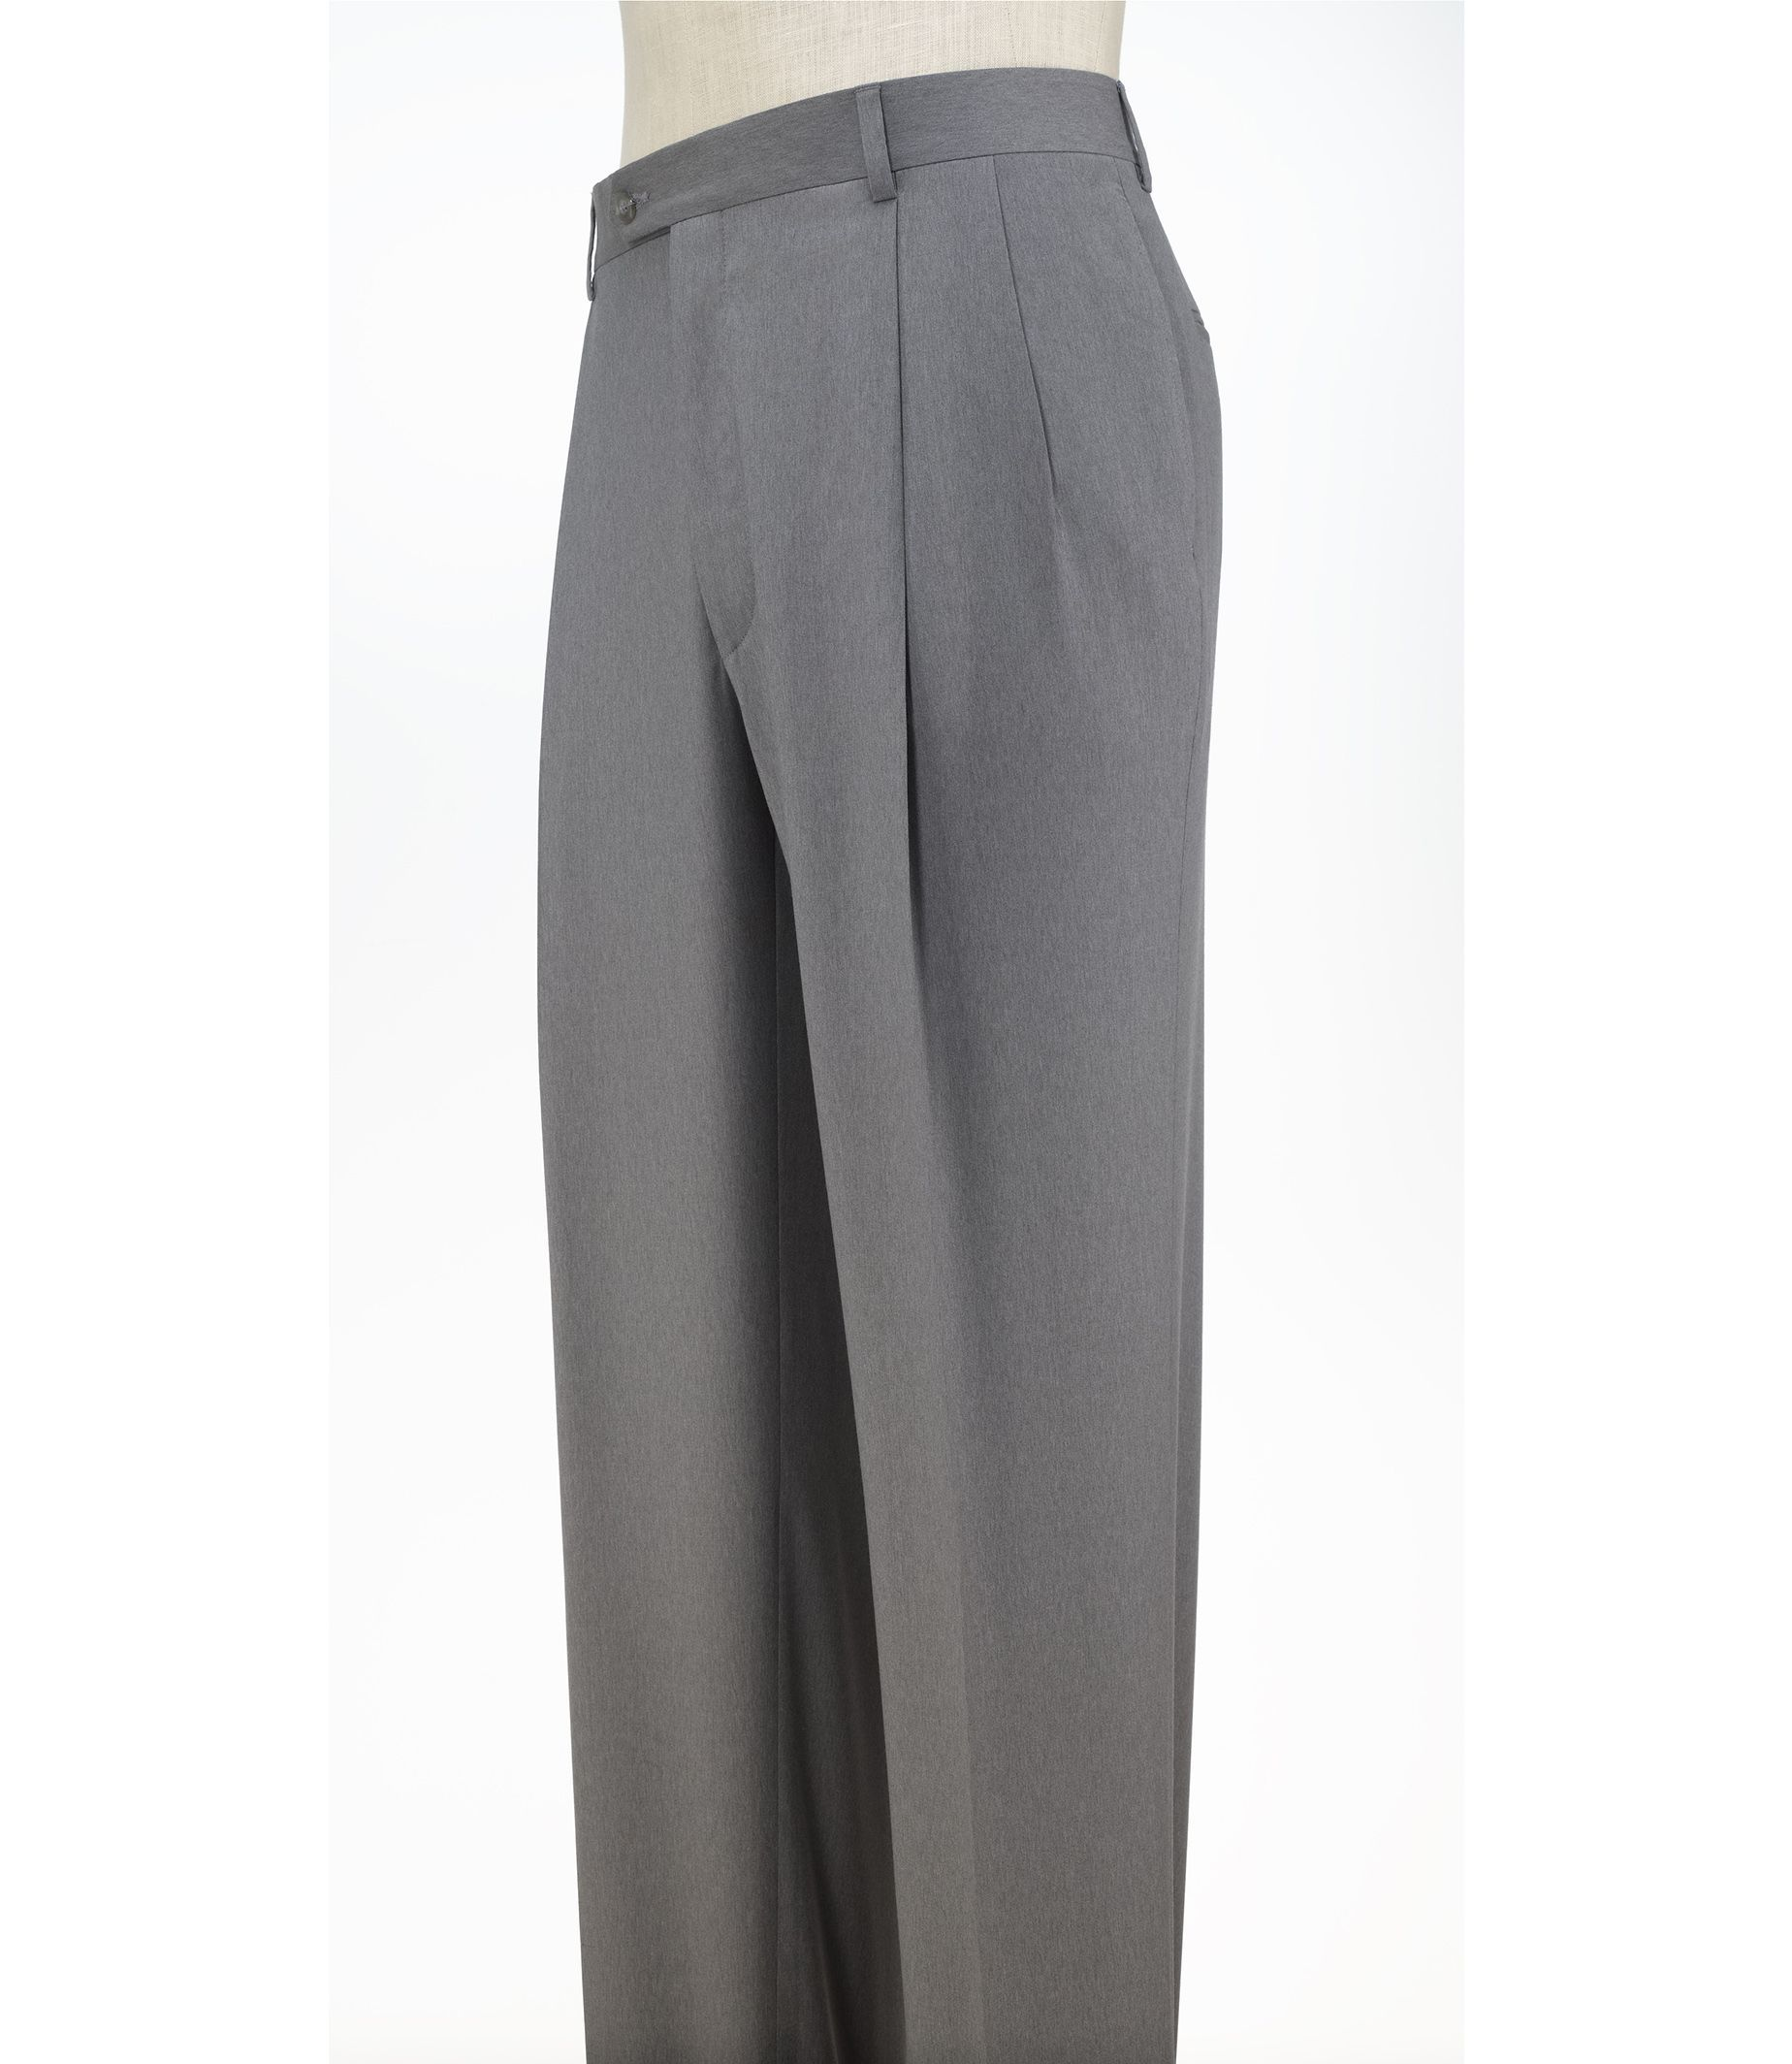 98a2c1038432 Signature Collection Traditional Fit Pleated Front Dress Pants CLEARANCE   2J94